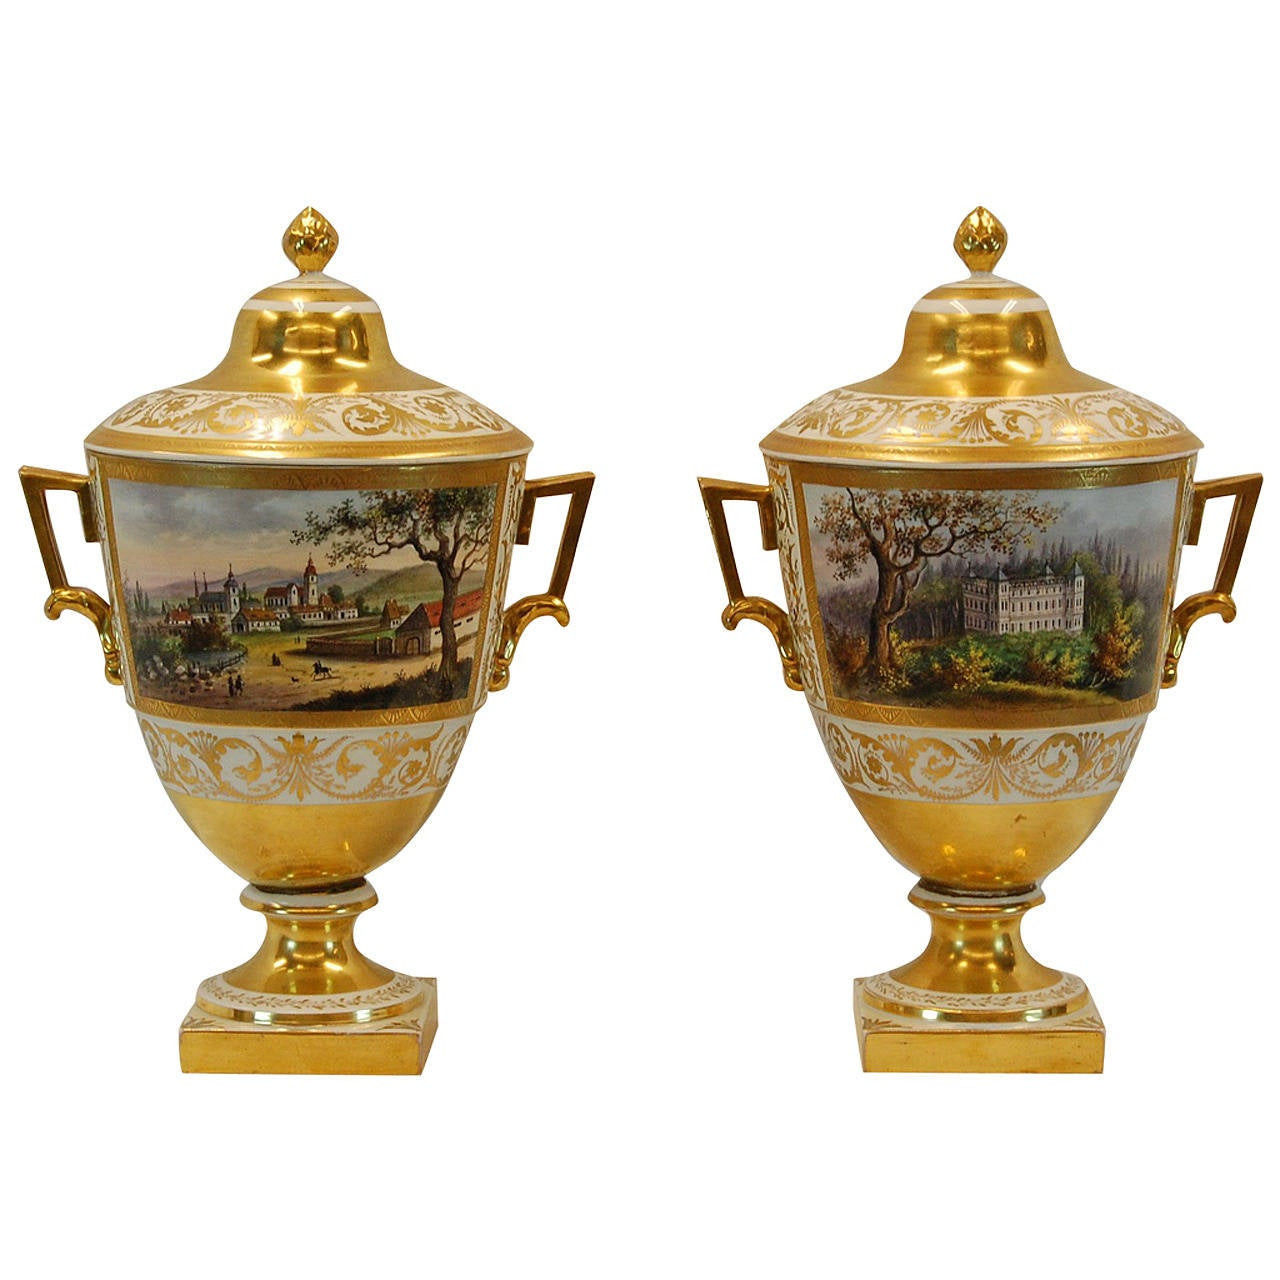 Pair German Porcelain Lidded Urns by the Eisenberger China Factory, Mid 19th C. For Sale